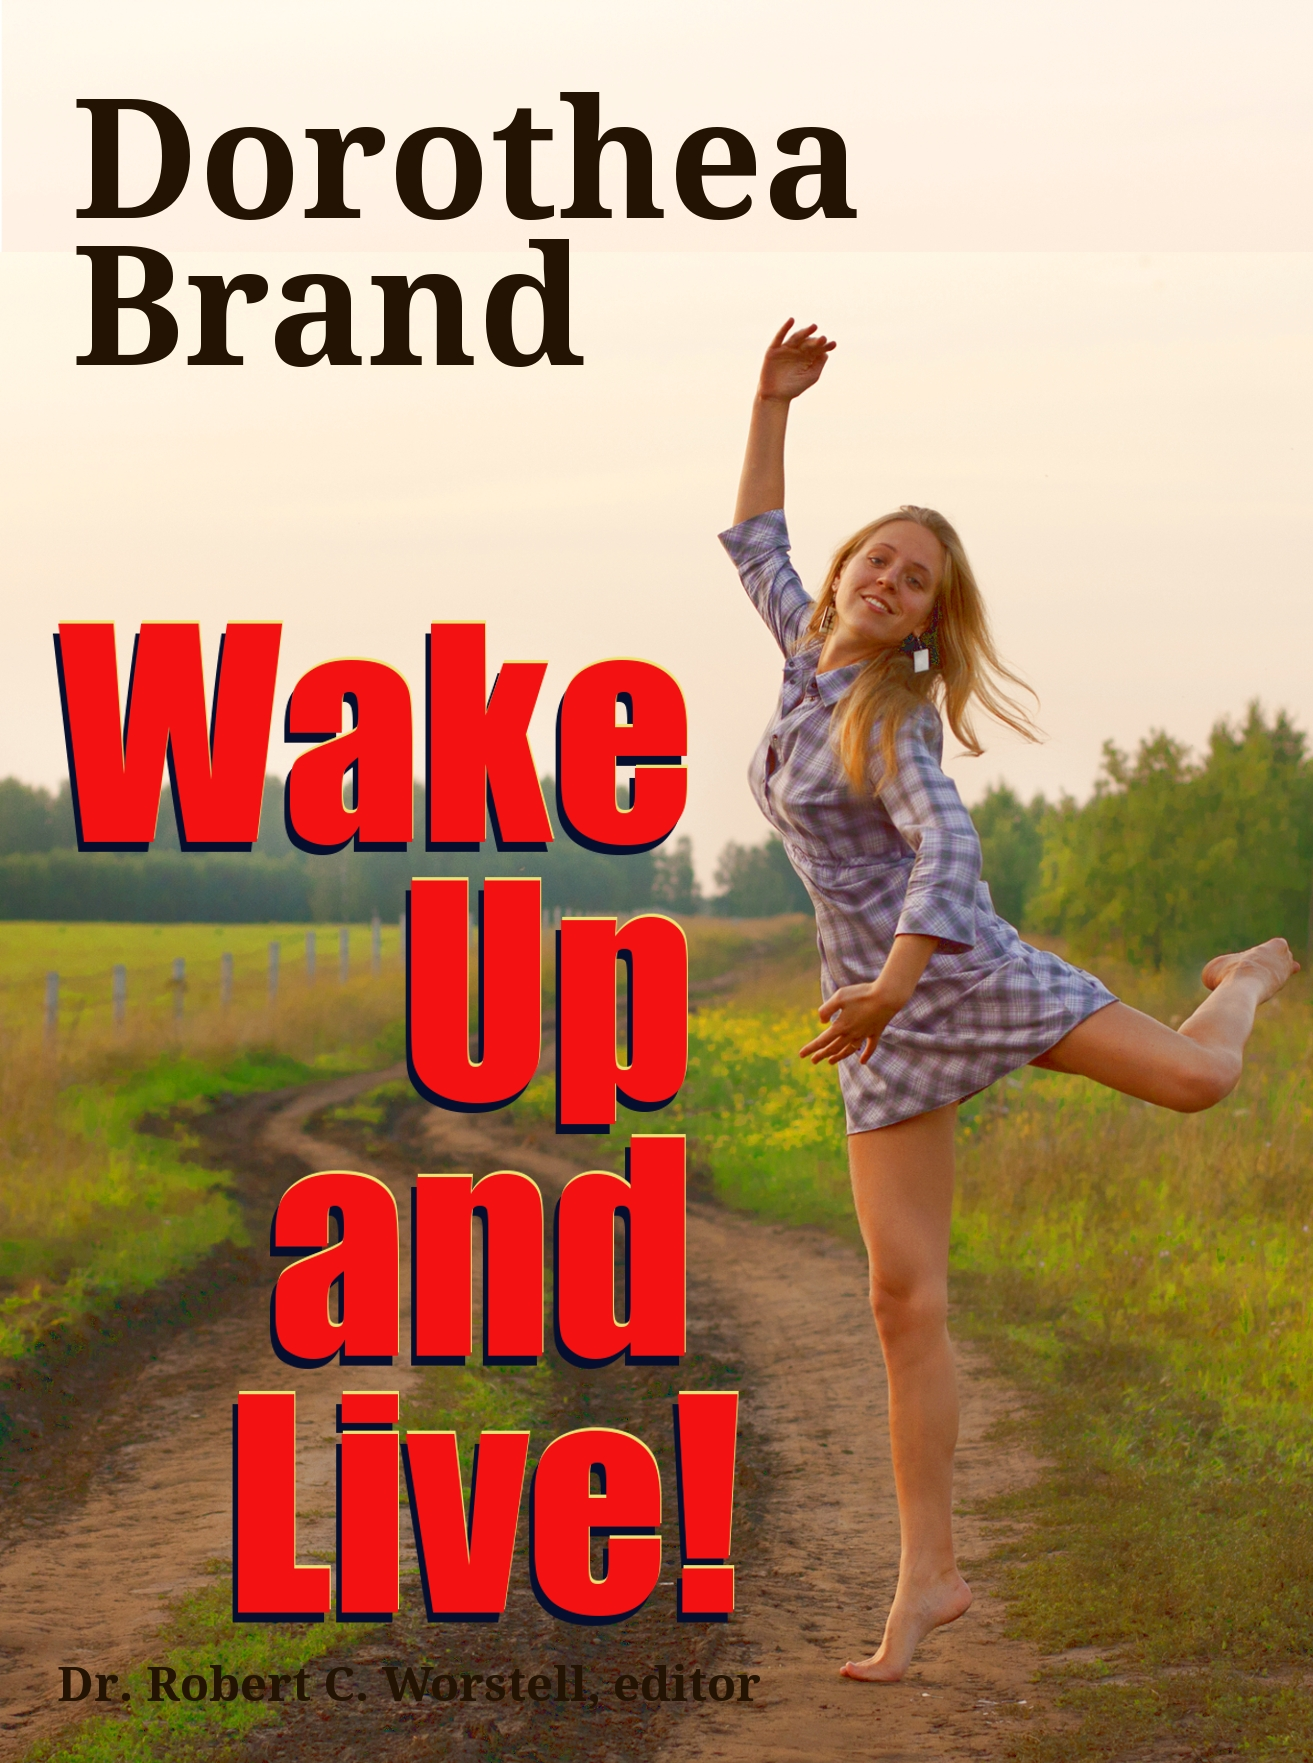 Dorothea Brande: Wake Up and Live!